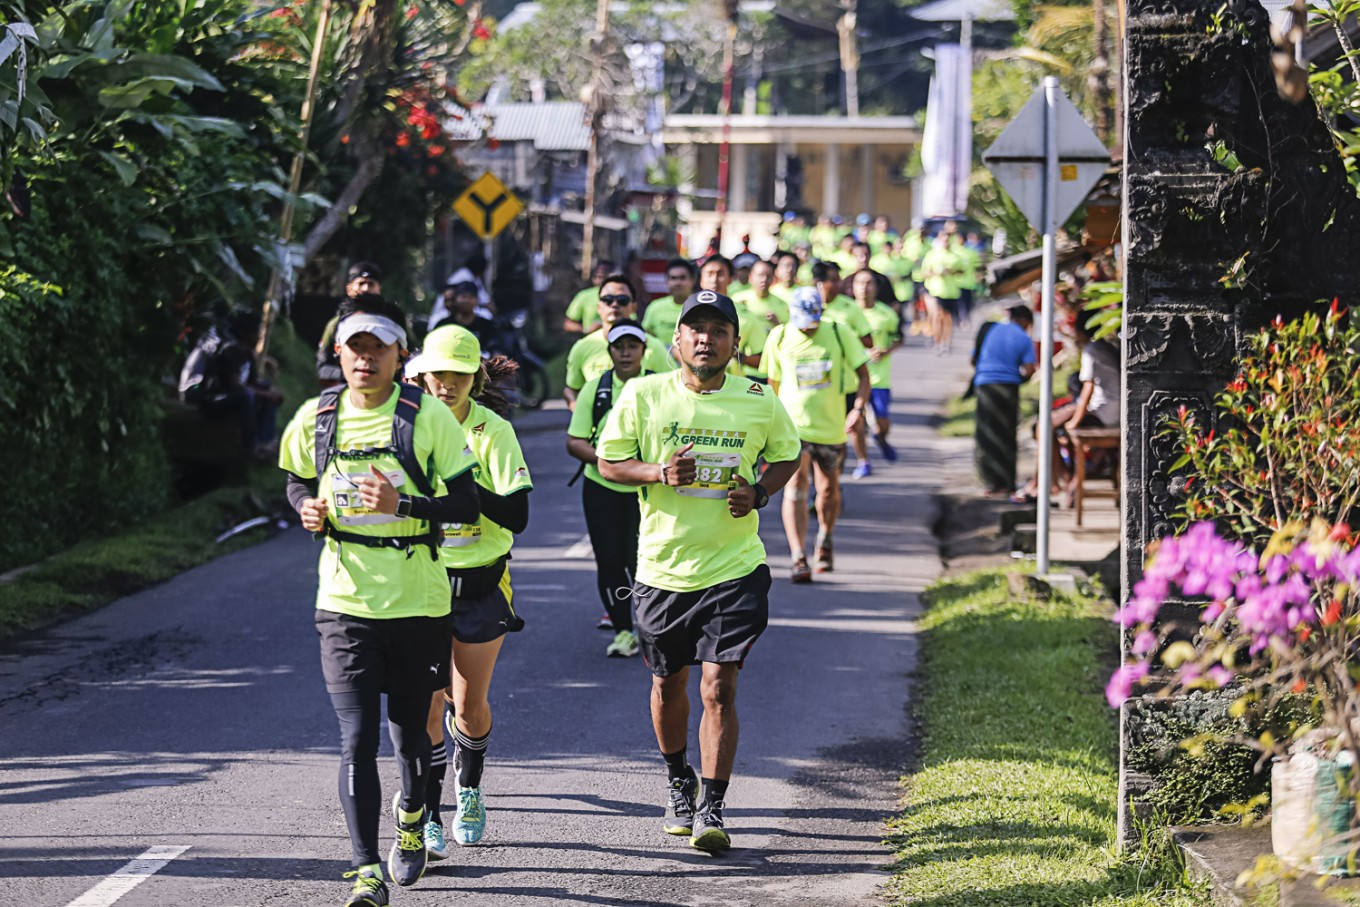 Astra holds first leg of 'green run' in Bali